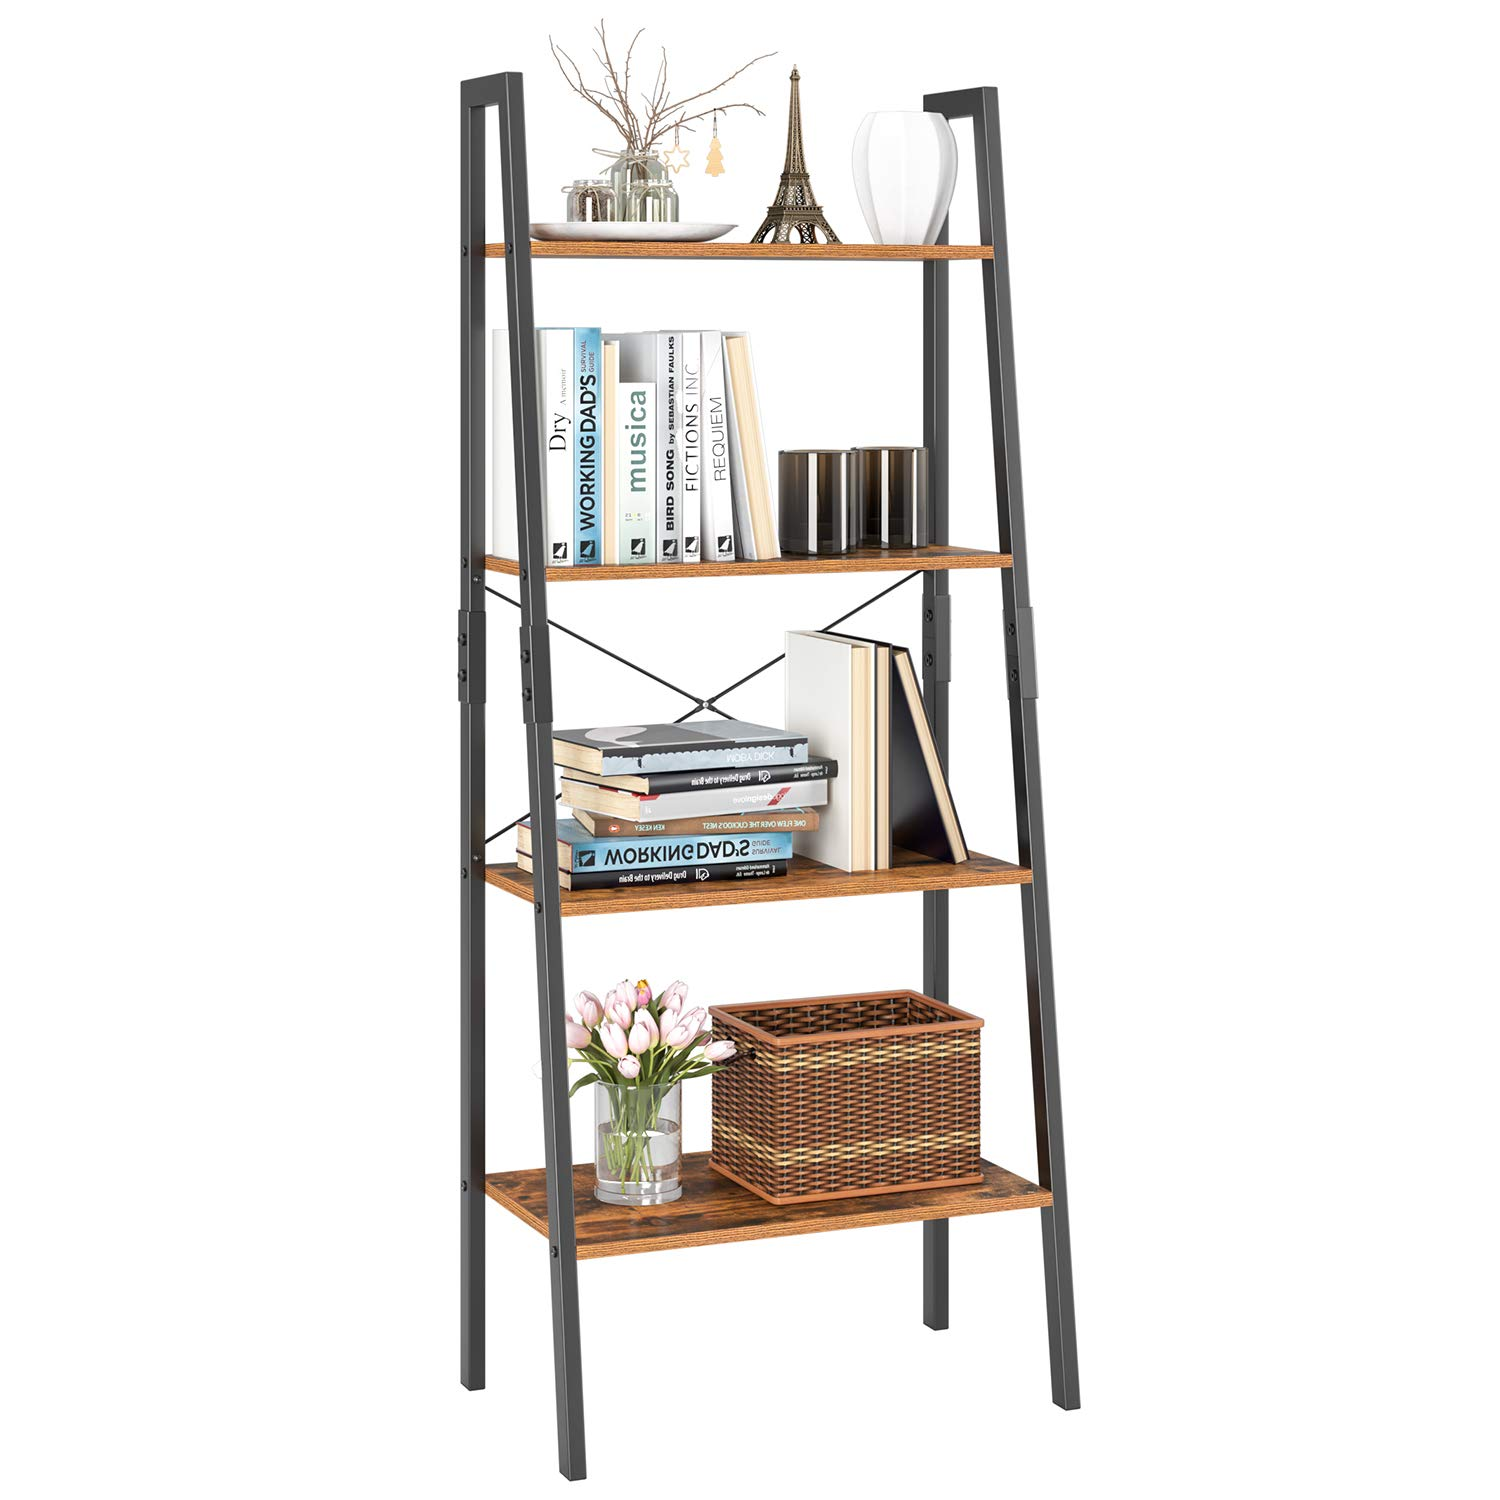 Homfa Ladder Shelf 4 Tier Vintage Bookshelf Bookcase Multifunctional Plant Flower Stand Storage Shelves Rack Wood Look Accent Metal Frame Modern Furniture Home Office by Homfa